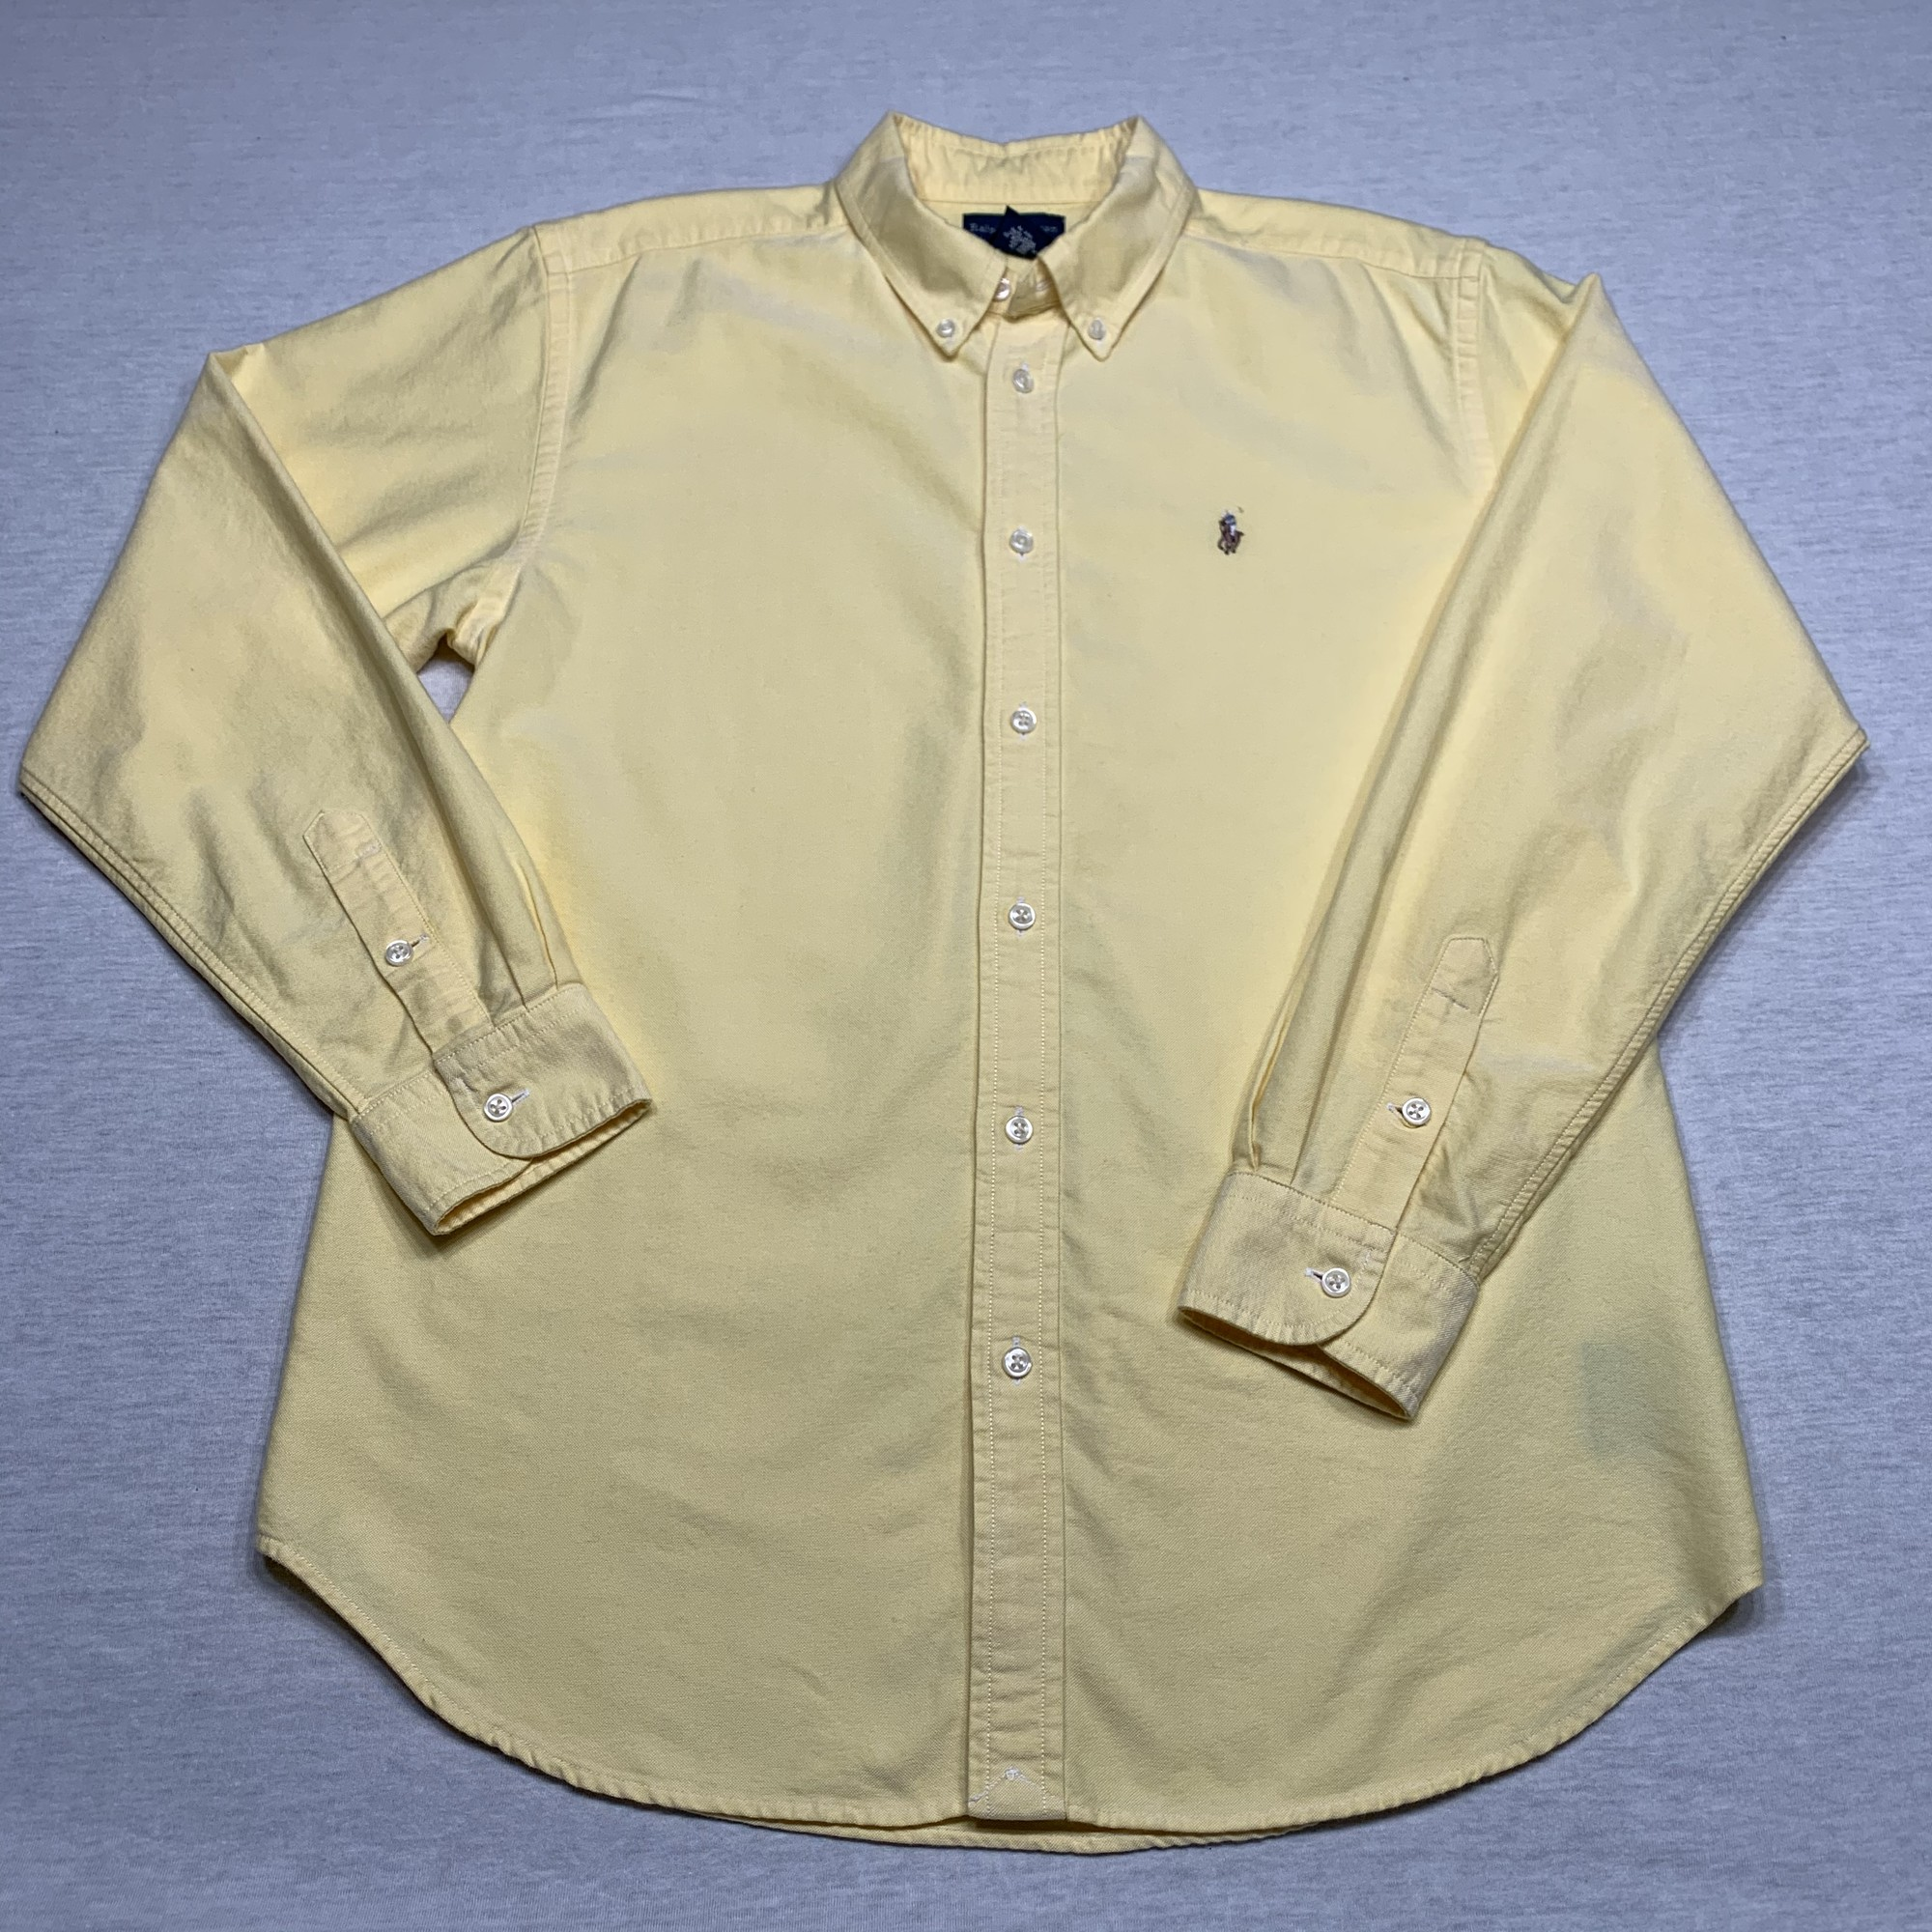 Oxford cloth shirt with button down collar